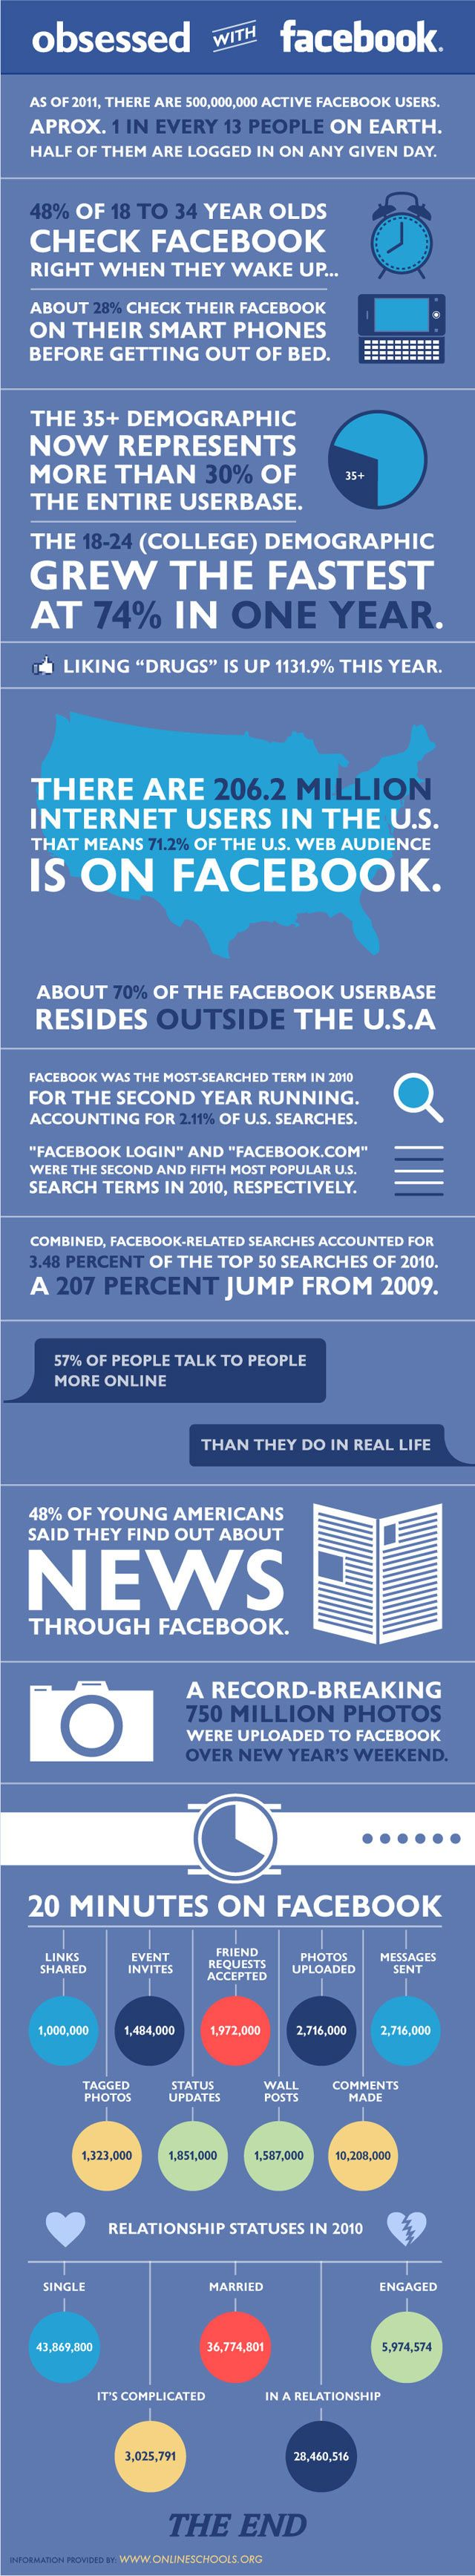 Too obsessed with Facebook?